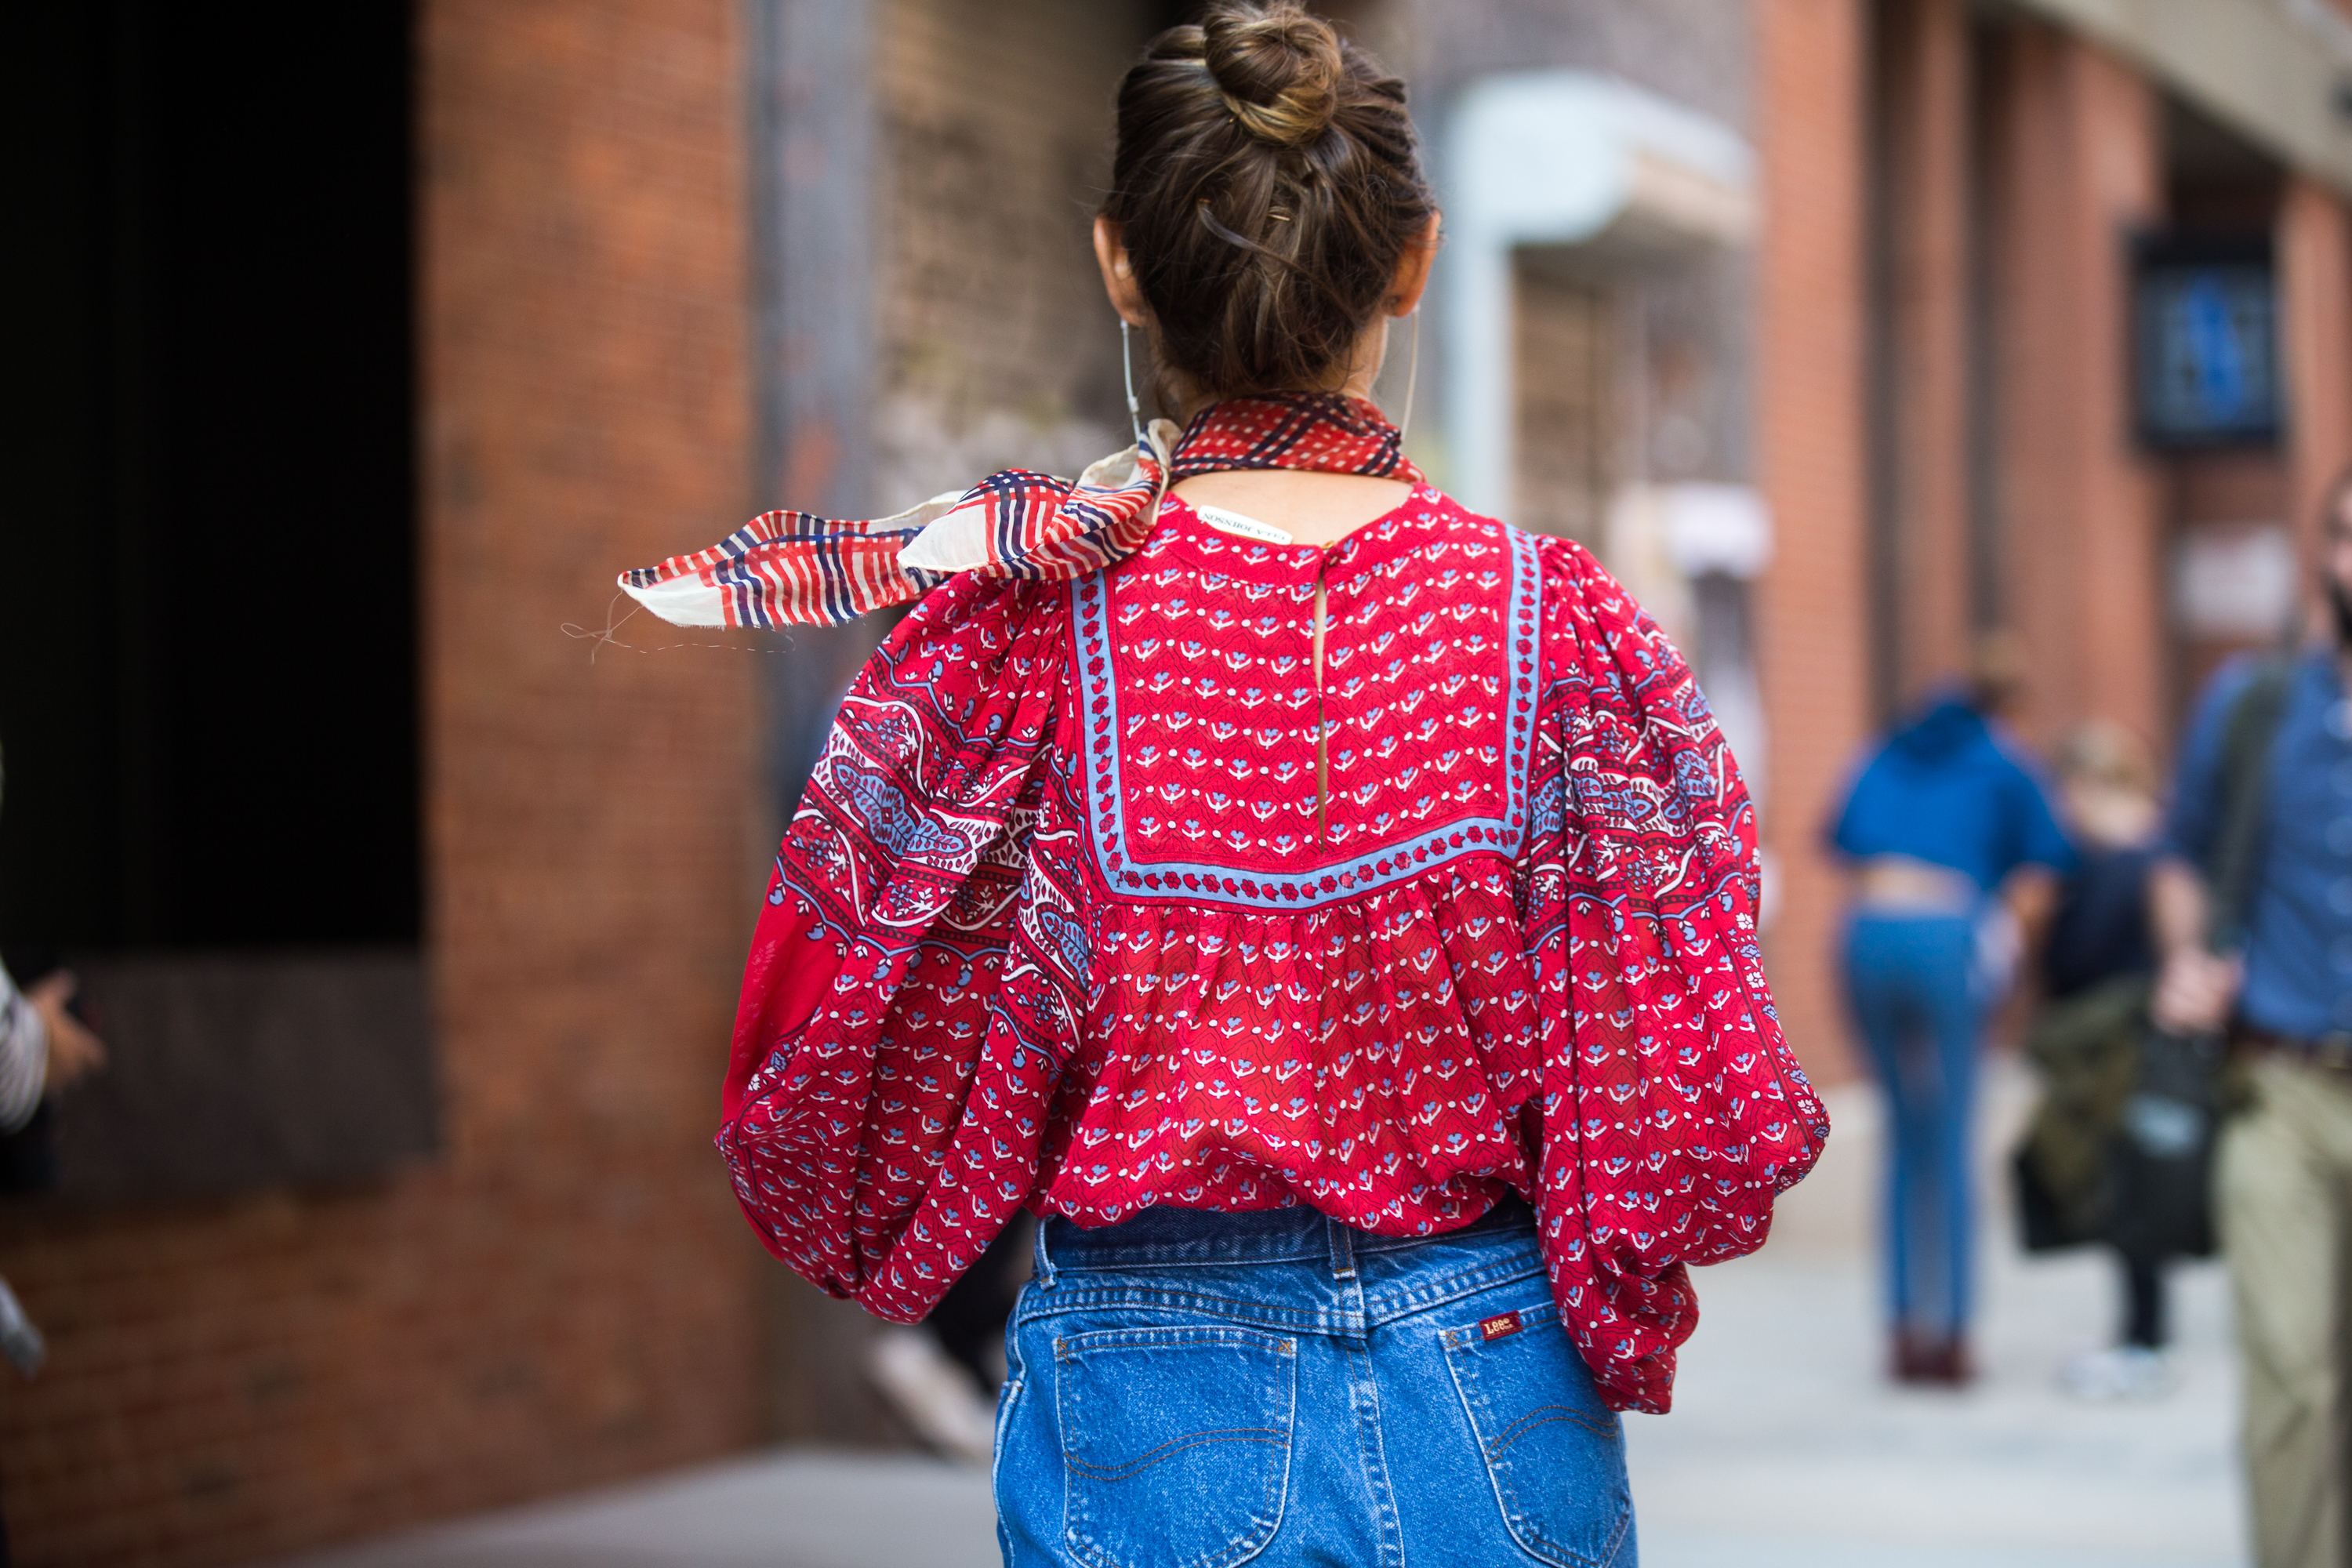 This peasant-style blouse was cinched in nicely with a pair of high-waisted jeans; the neck scarf added a touch of whimsy.